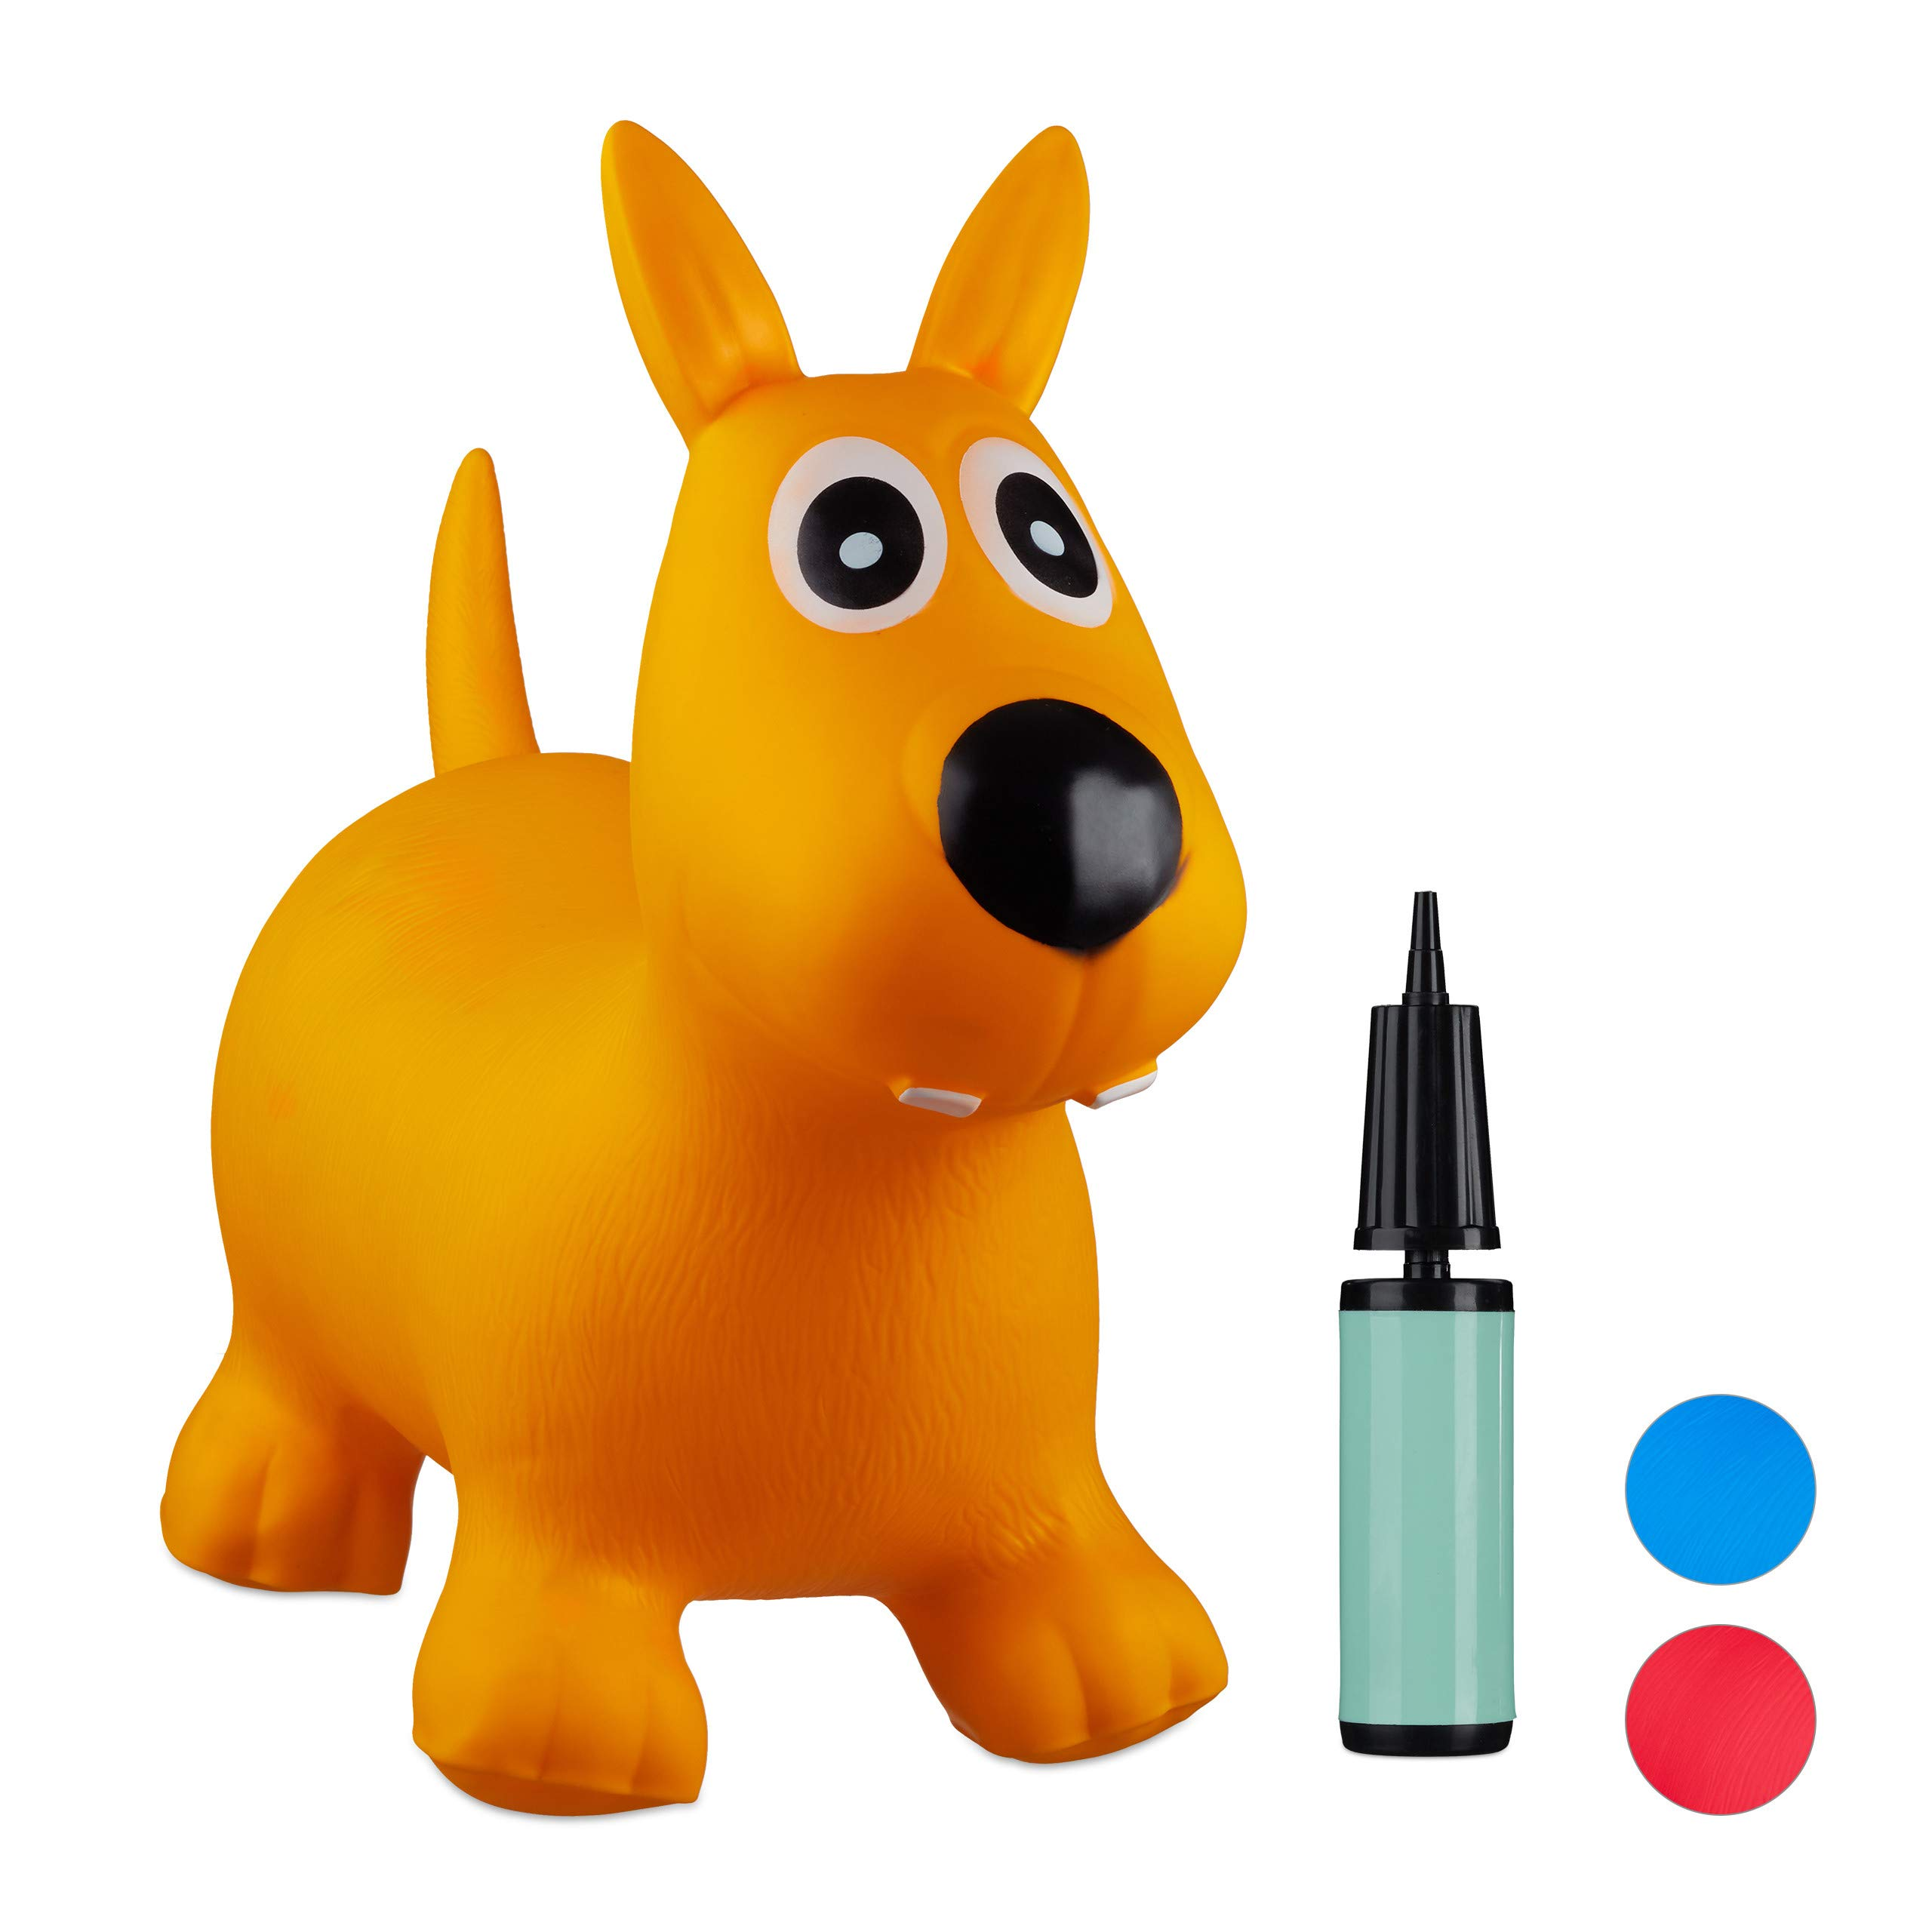 Relaxdays 10024990_48 Hopping Dog, Air Pump Included, Up to 50 kg, BPA-Free, Space Hopper, Yellow, H x W x D: app. 50 x 26 x 60 cm